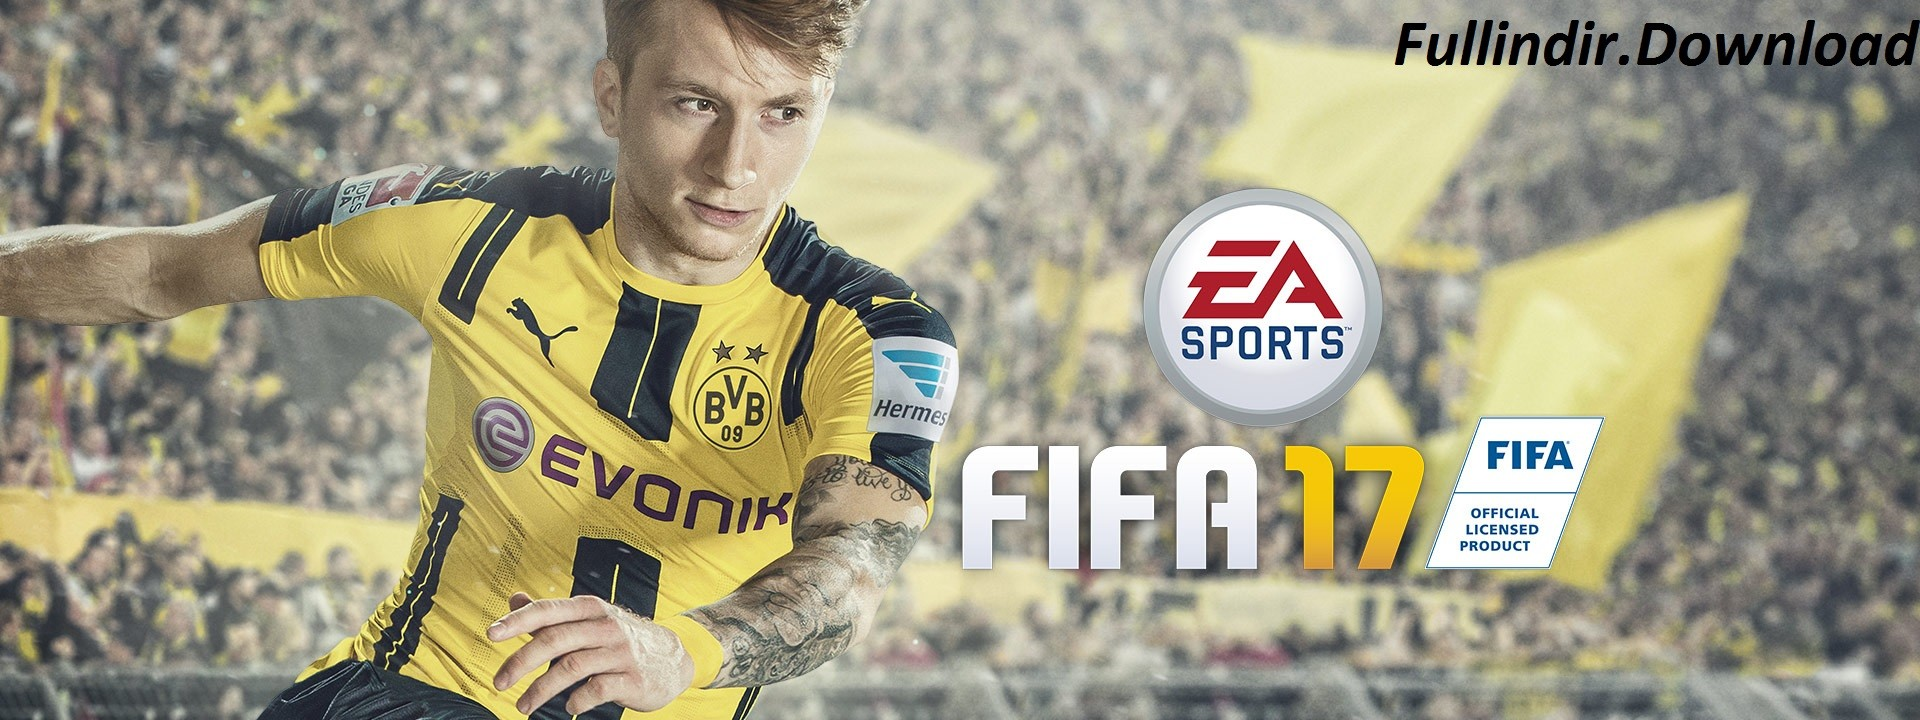 Fifa 2017 Full Torrent indir SteamPunks